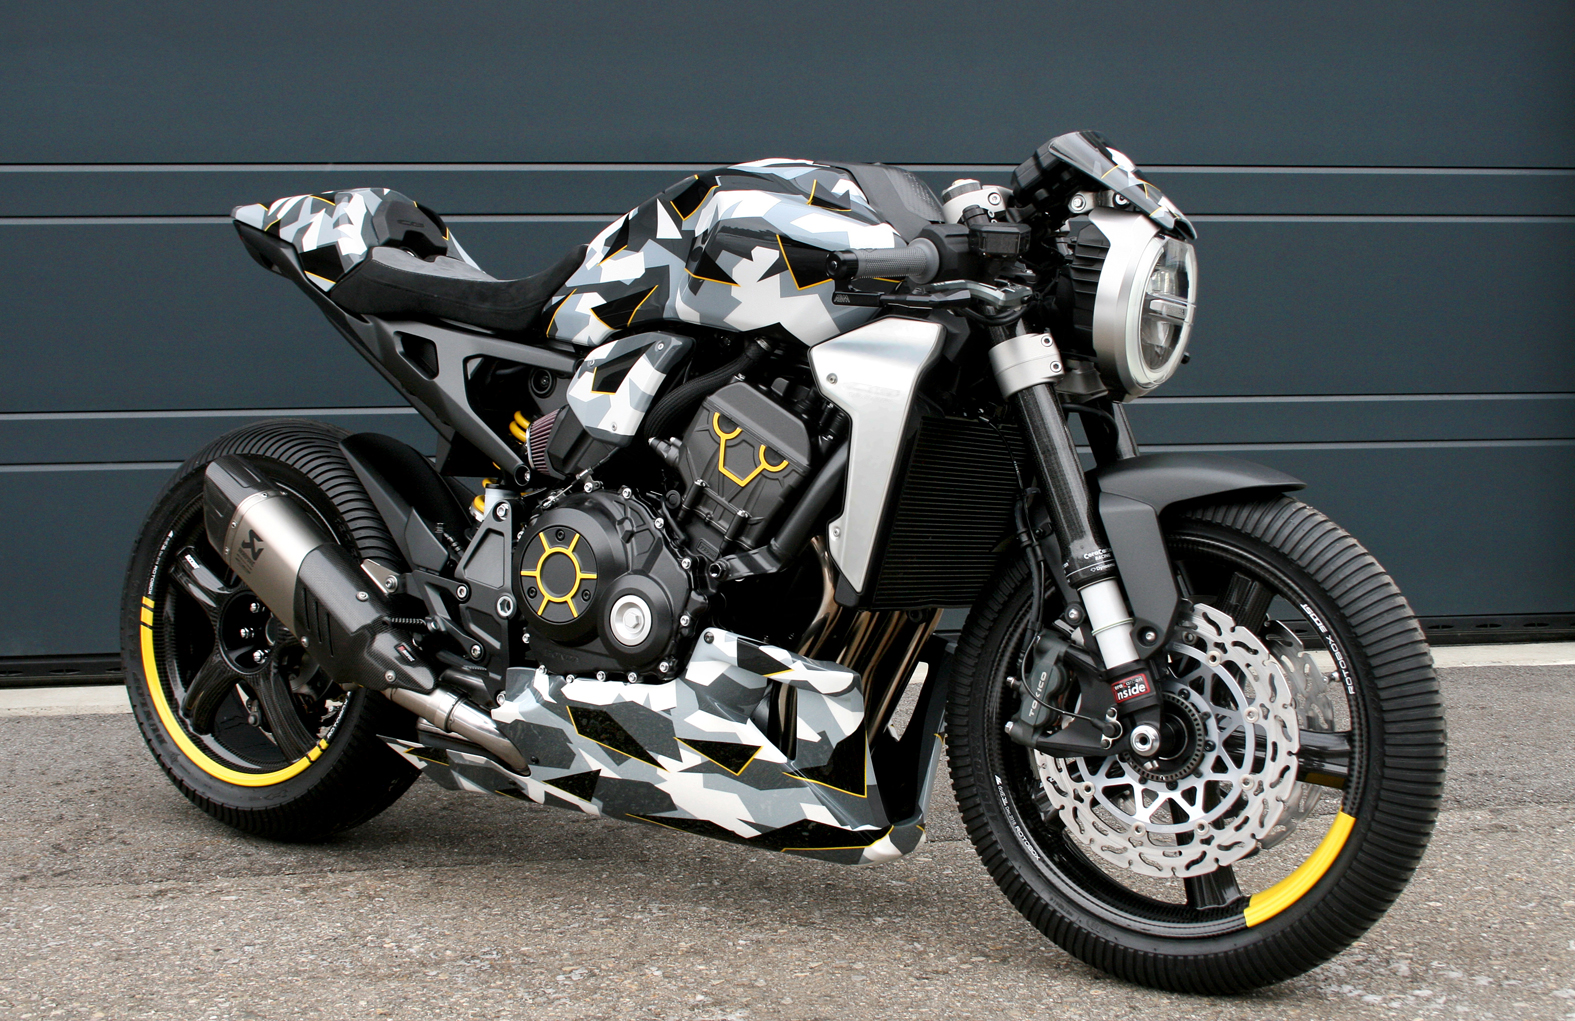 Honda CB1000R-adical by Gannet Design